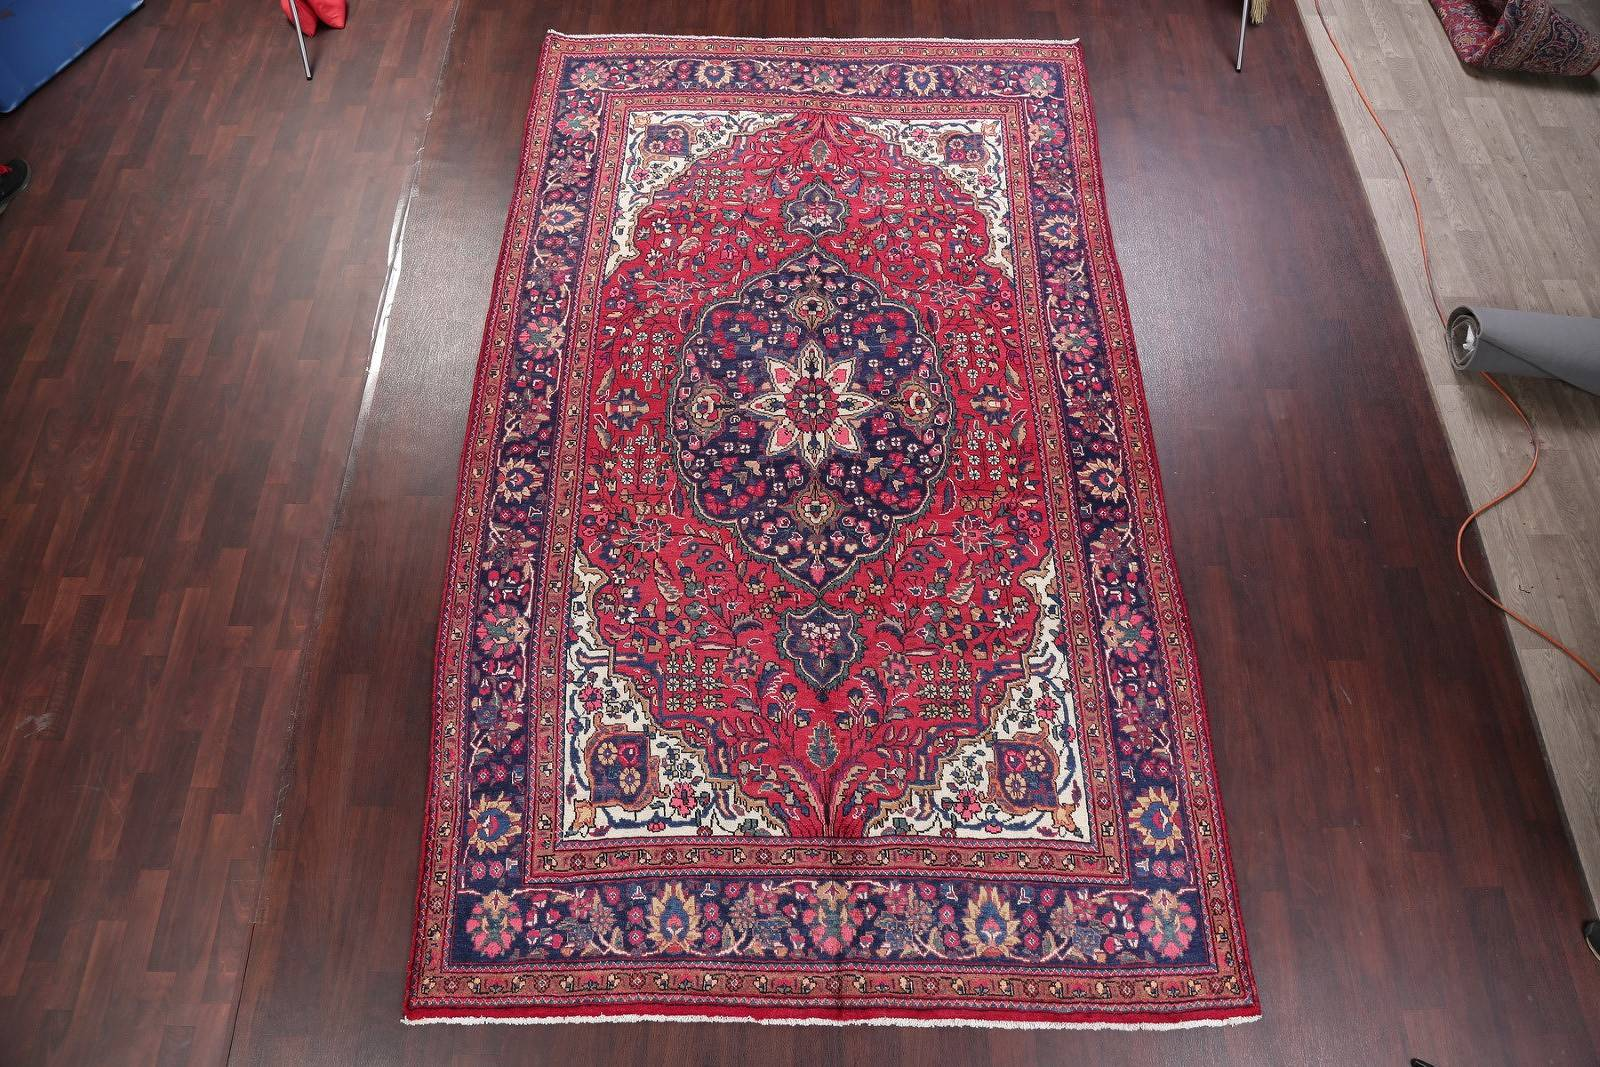 Antique Hand-Knotted Red Floral Mashad Persian Area Rug 7x12